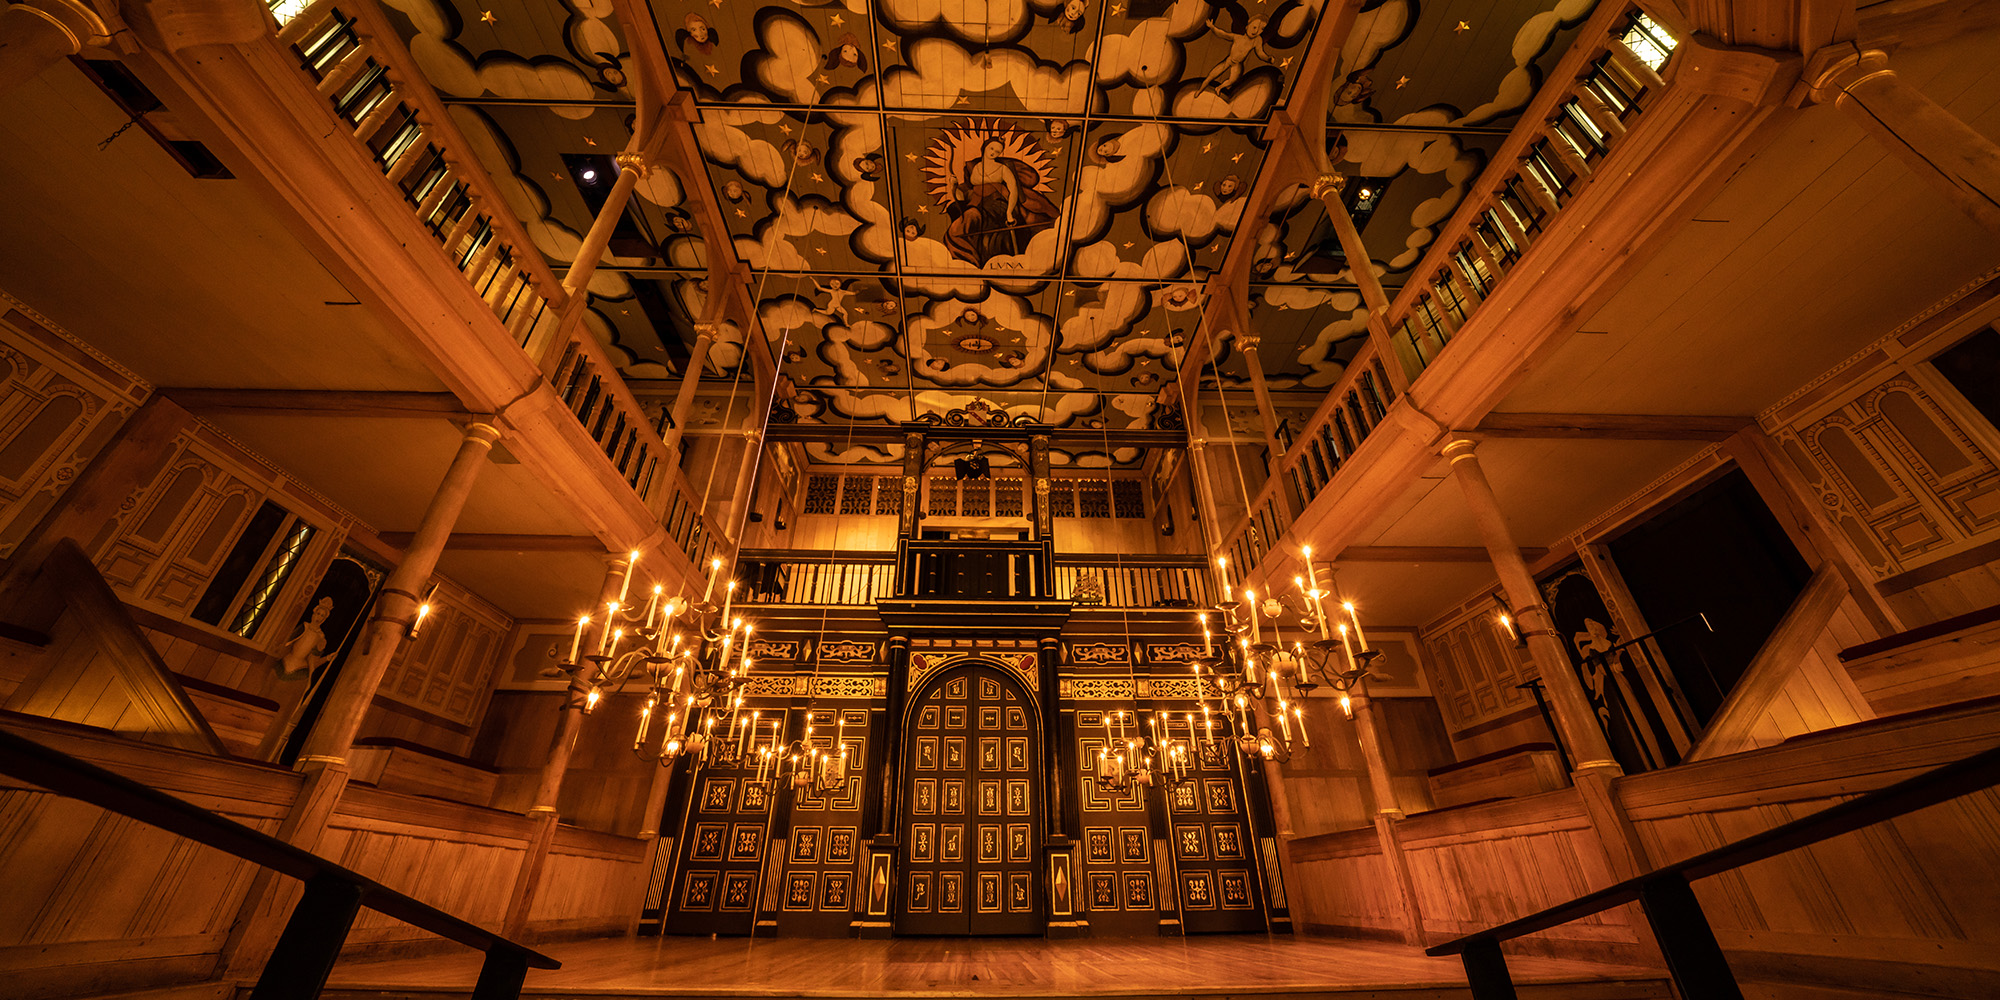 A wide angled shot of the Sam Wanamaker Playhouse with its ornate painting ceiling depicting the Goddess Luna and clouds, hanging candelabra, and panelled painted doors.